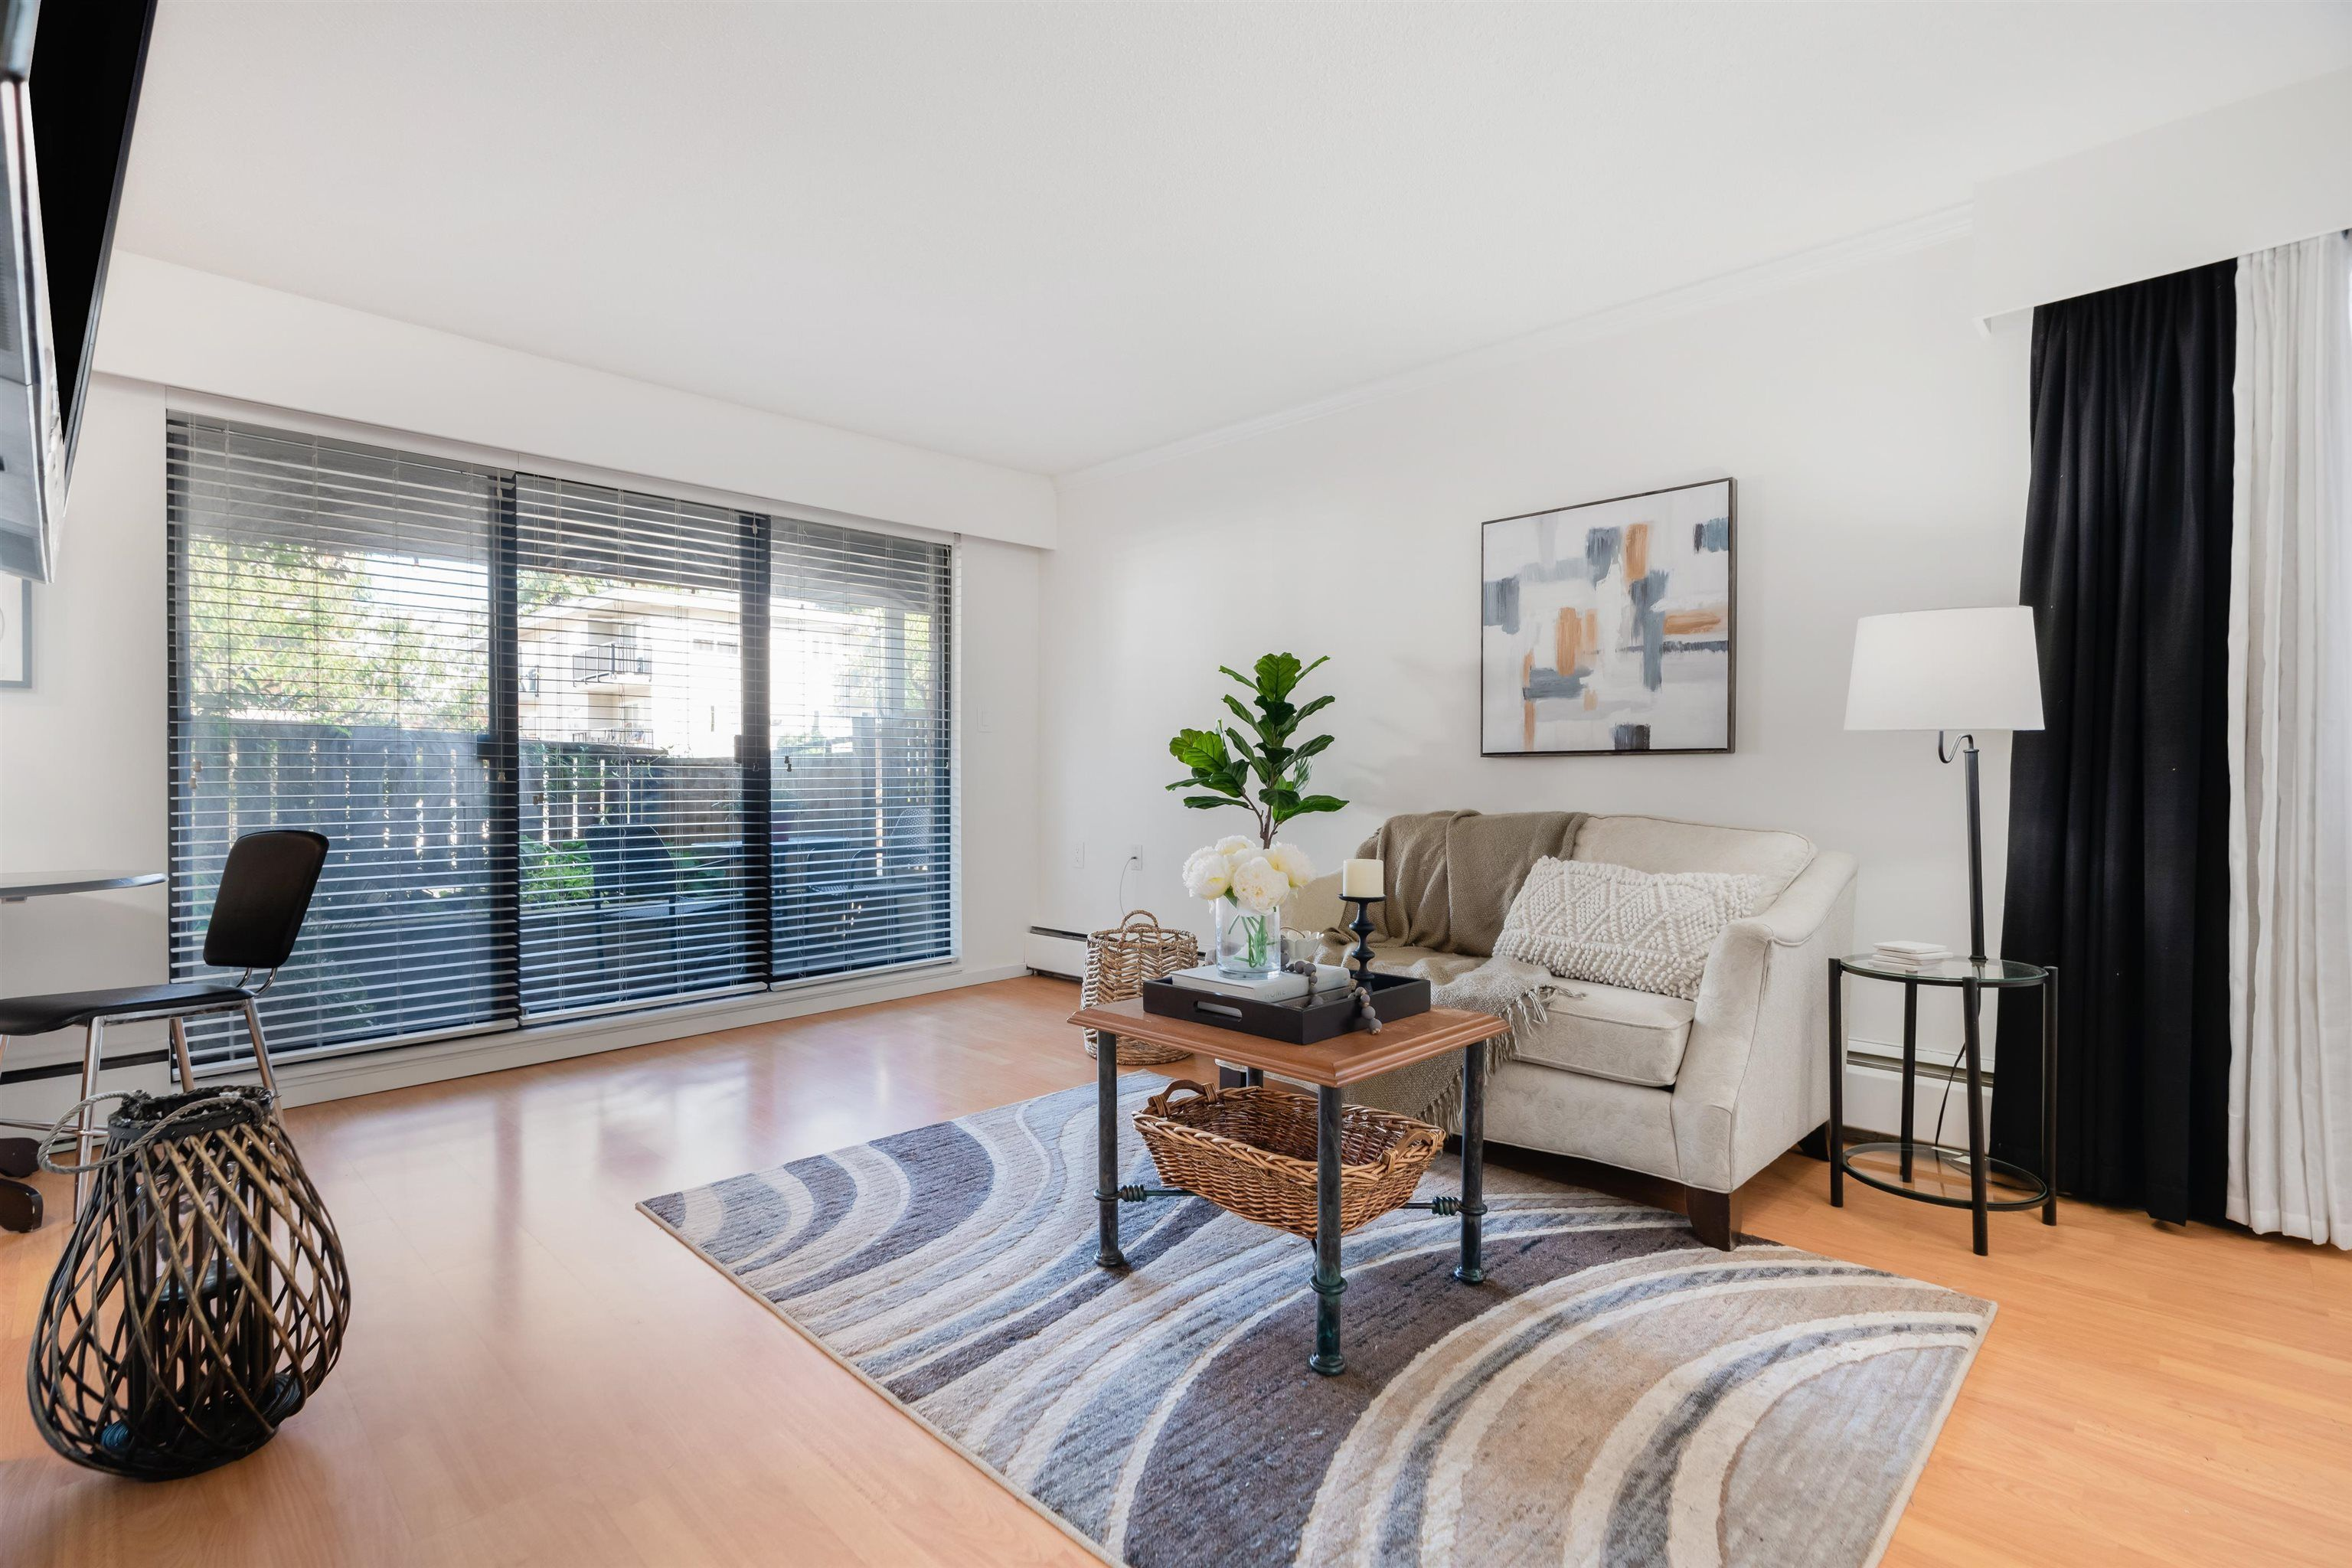 """Main Photo: 104 2424 CYPRESS Street in Vancouver: Kitsilano Condo for sale in """"Cypress Place"""" (Vancouver West)  : MLS®# R2623646"""